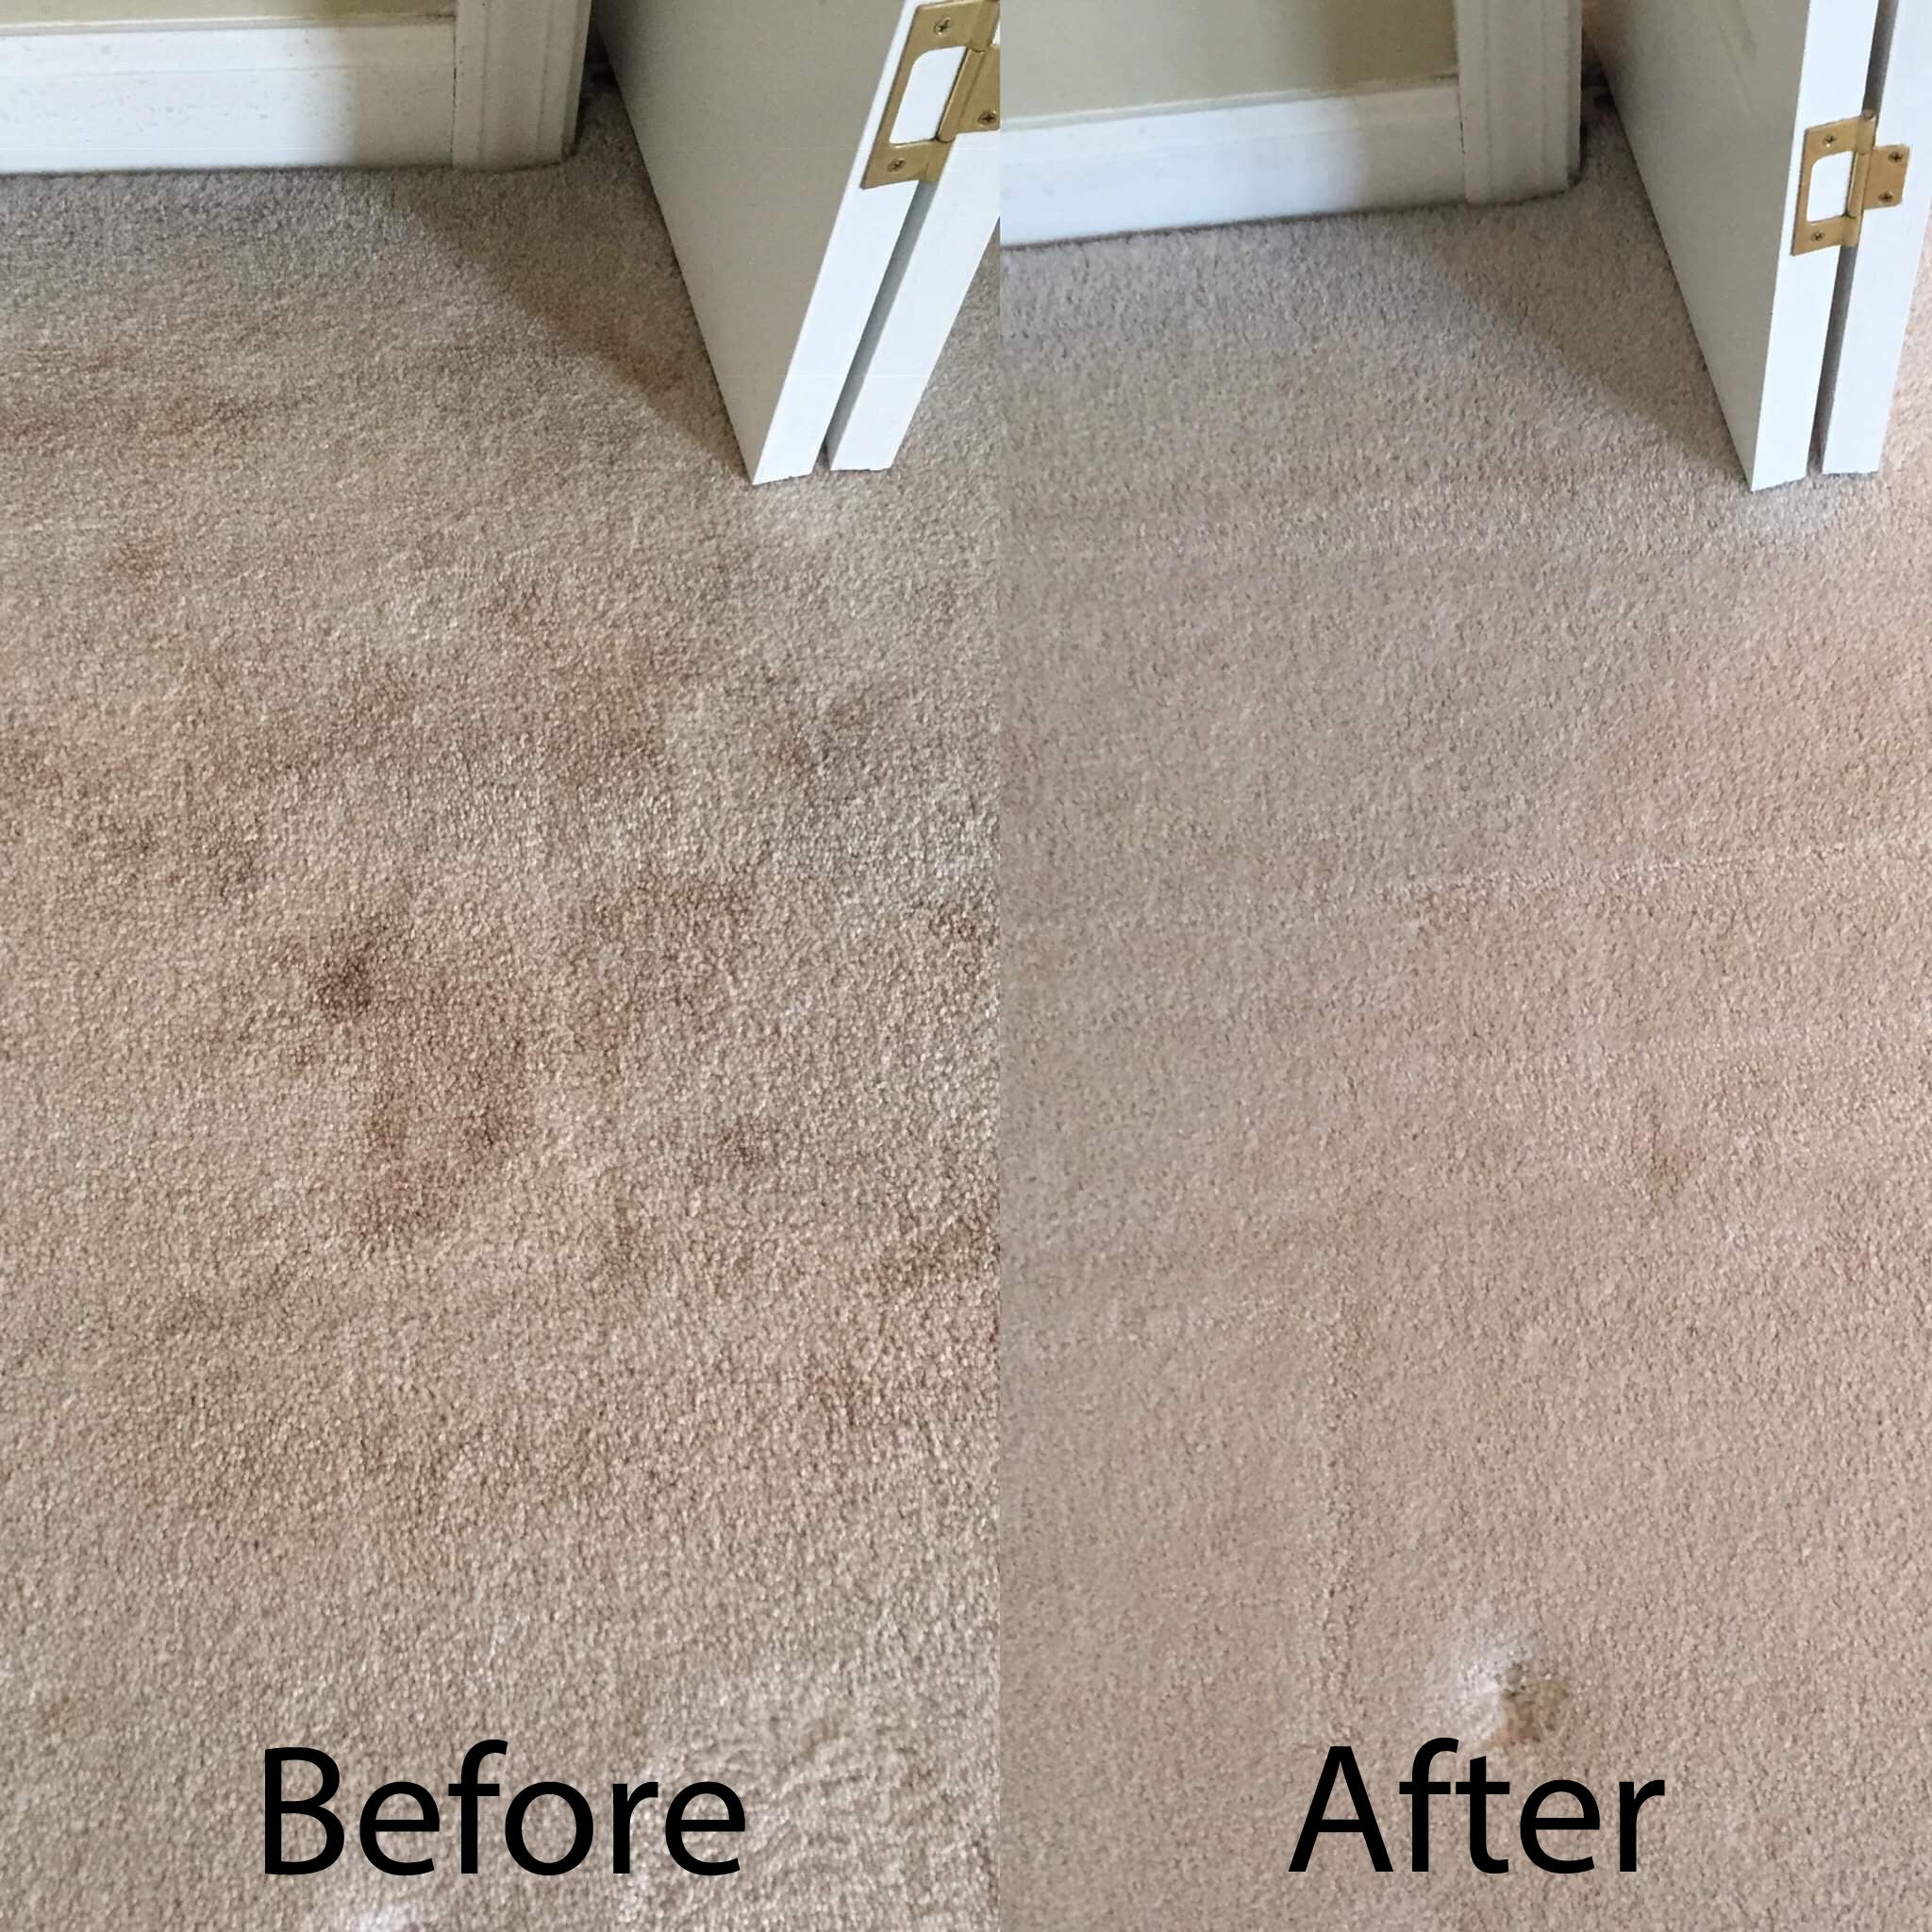 Using Hot Water Extraction We Treat And Remove Most Pesky Spots Staining Your Carpet Call For A Free Green Carpet Cleaning Green Cleaning Company Green Carpet